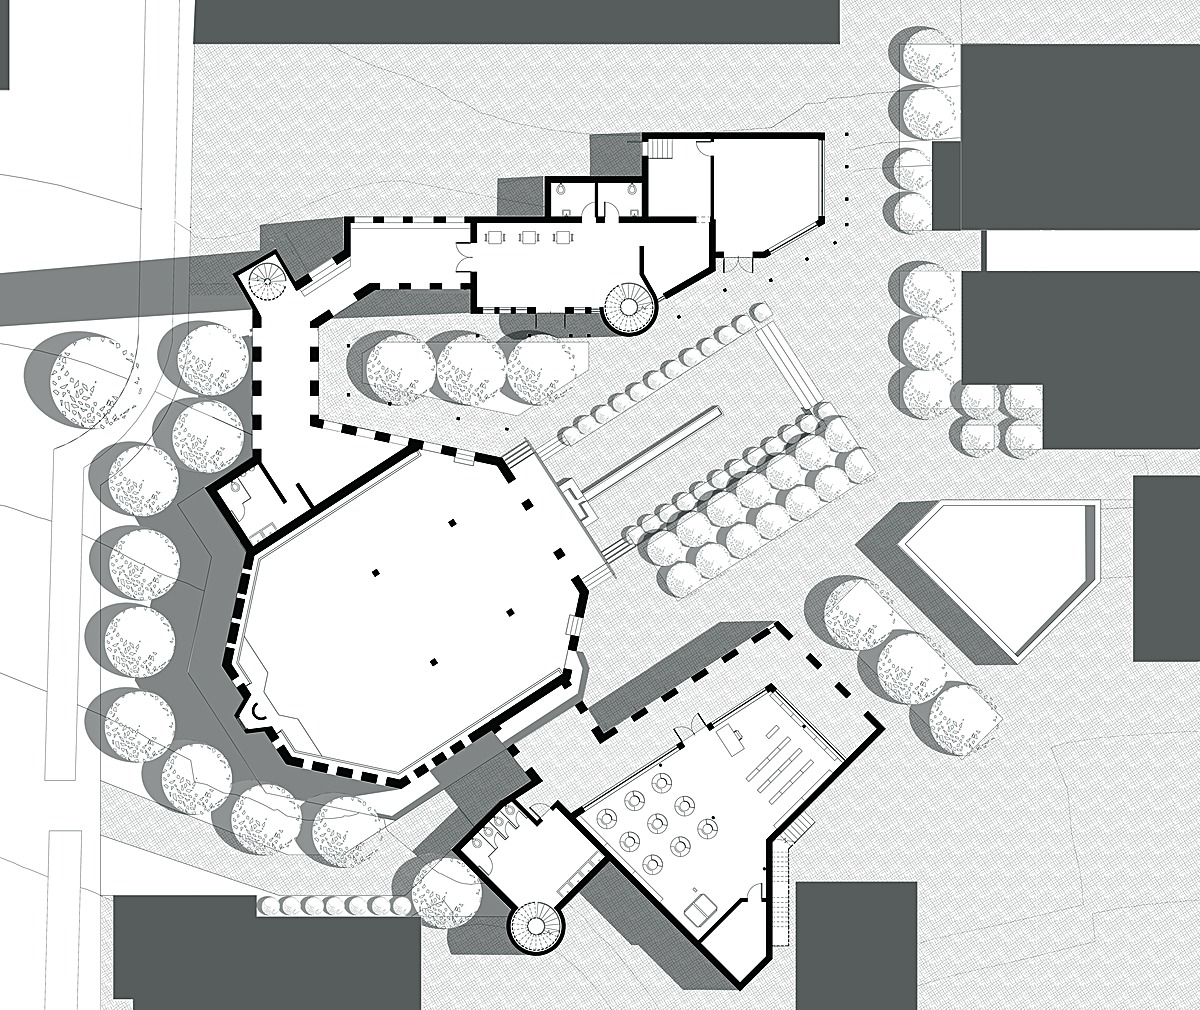 Ground Level Floor Plan